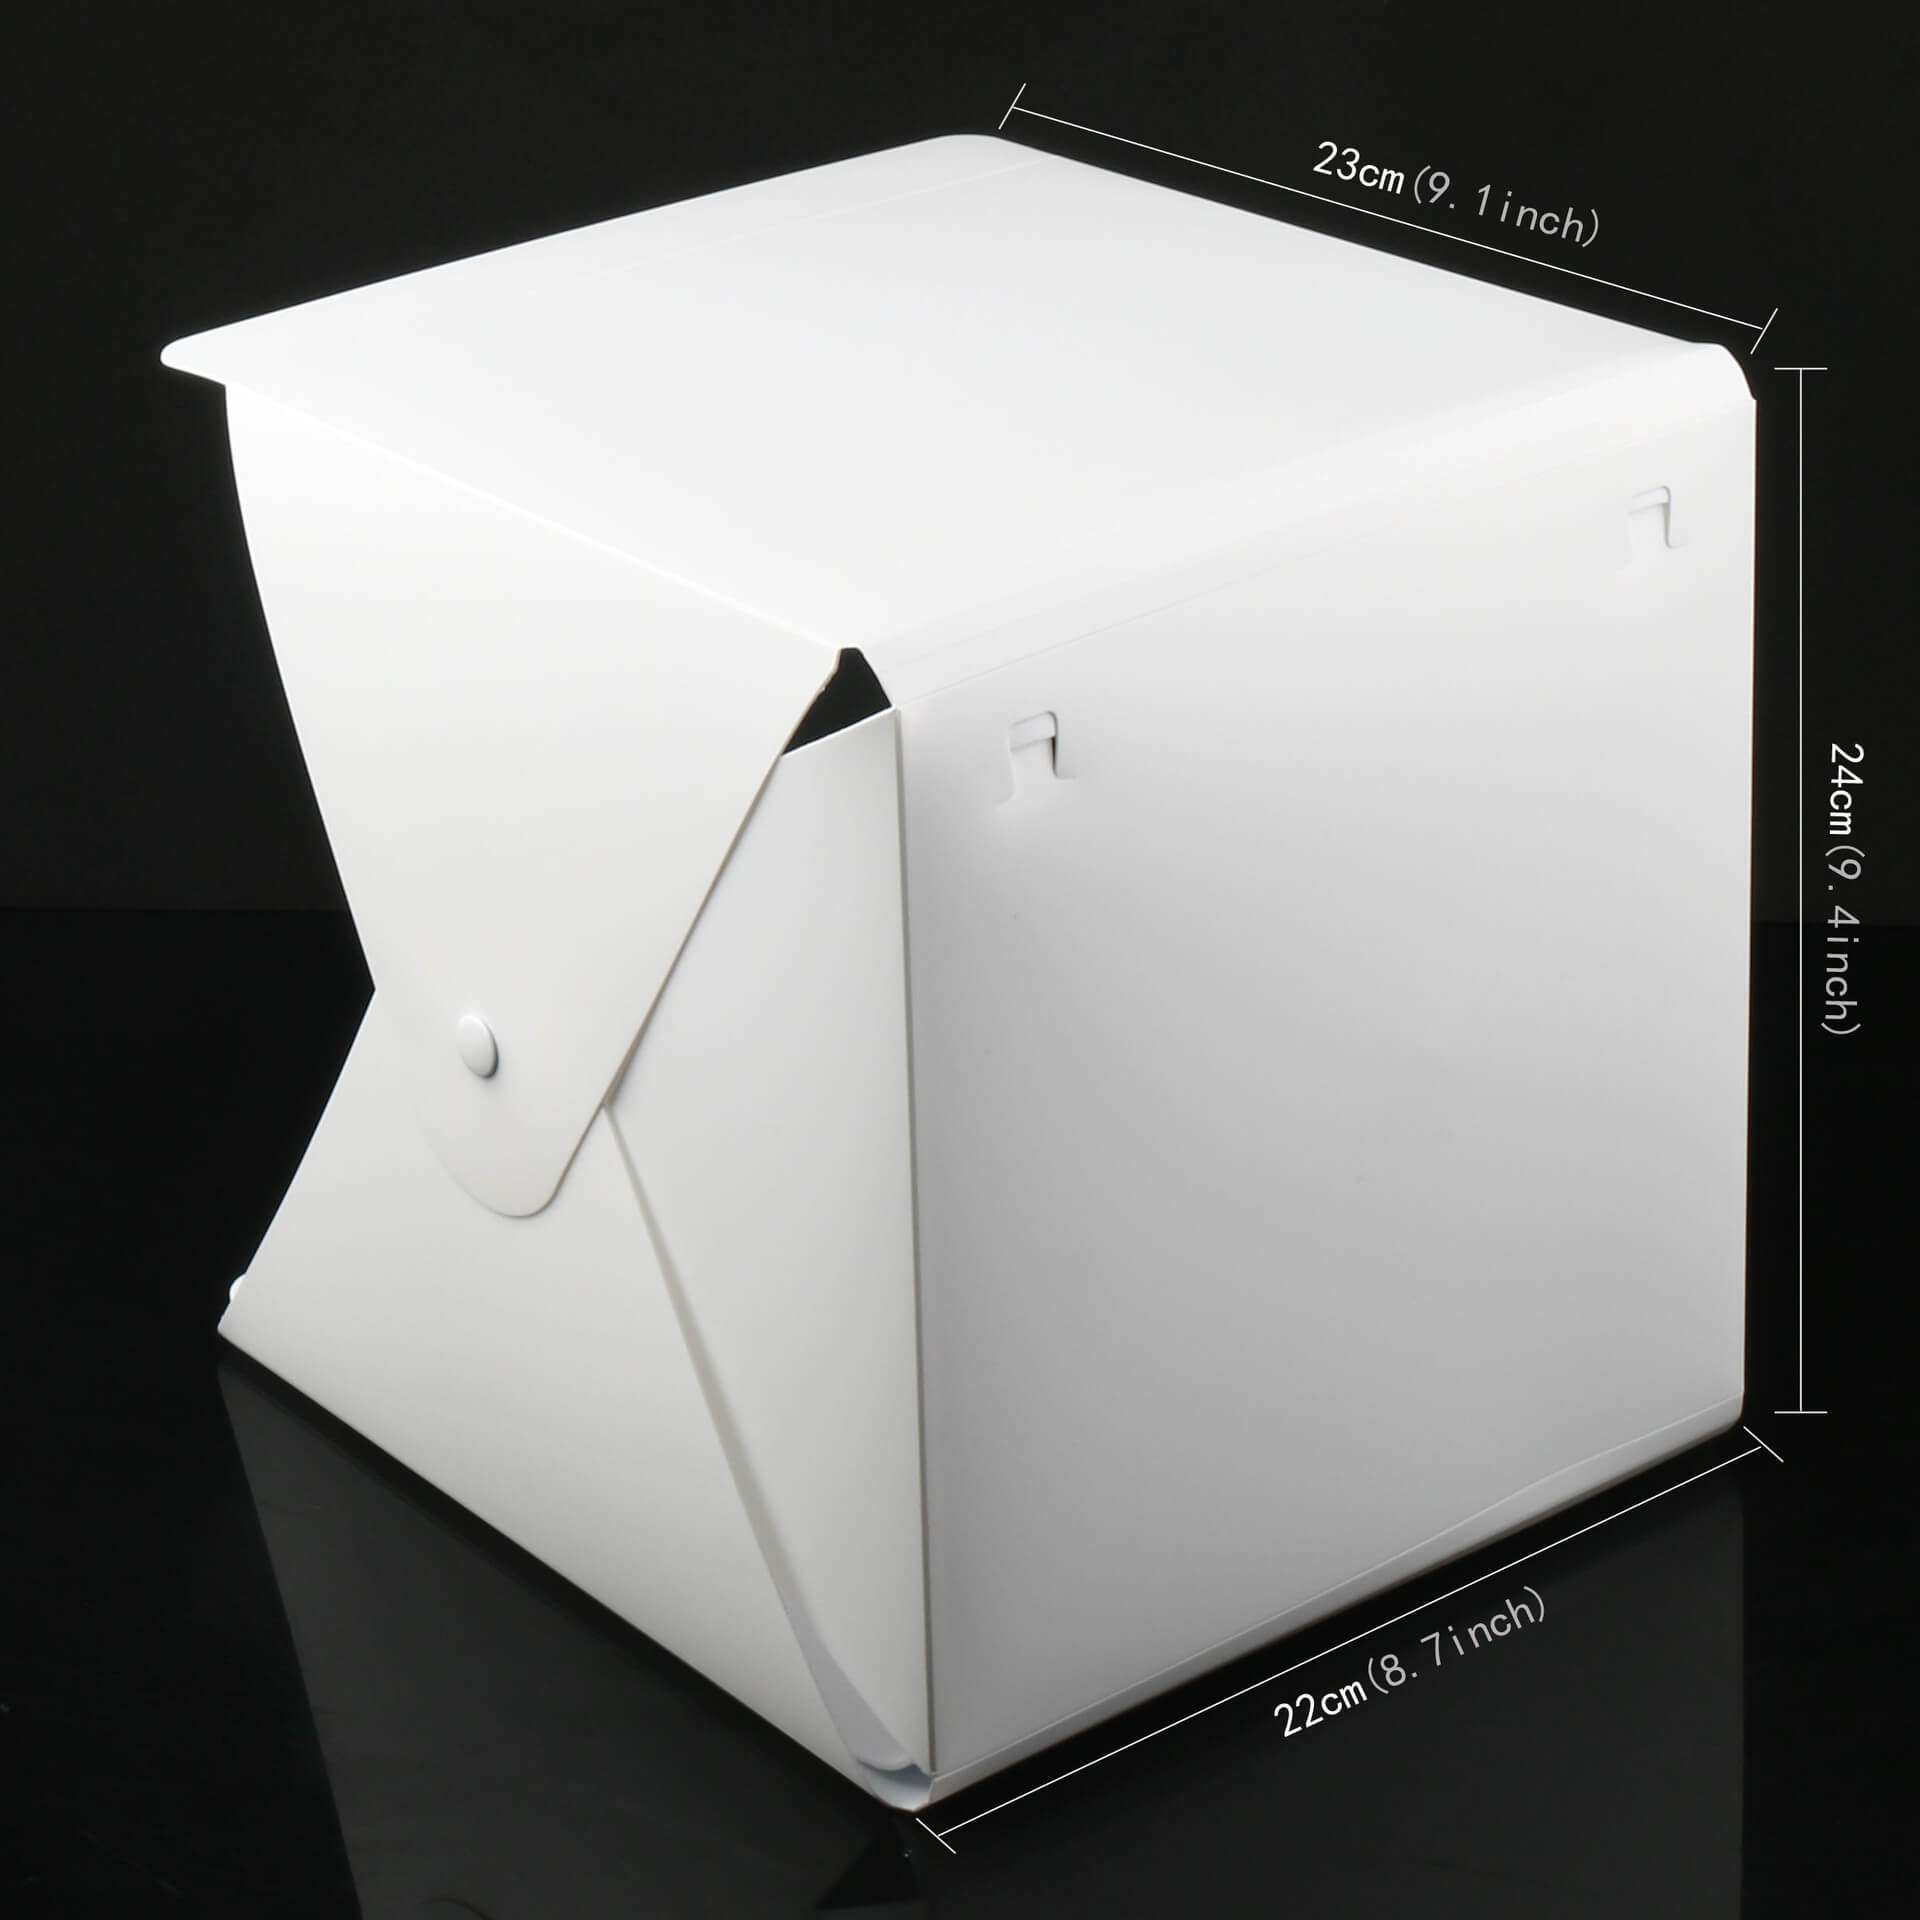 PORTABLE LED STUDIO LIGHT BOX